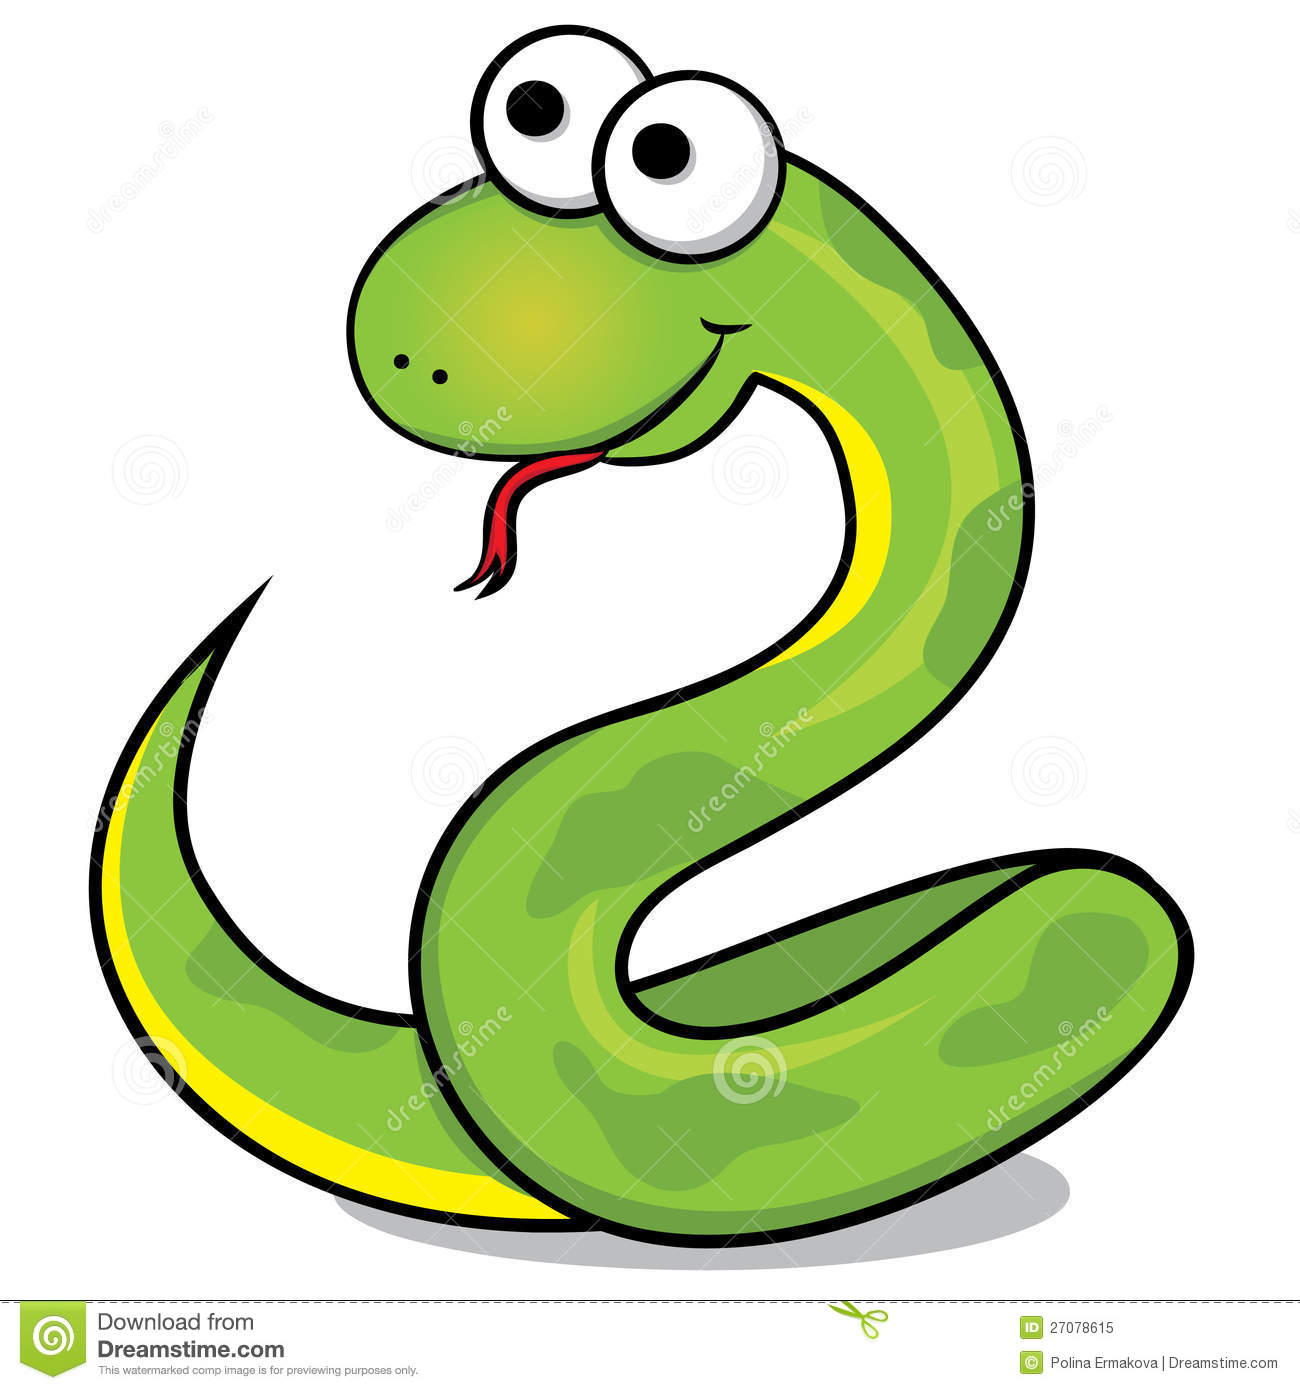 snake clipart clipart panda free clipart images rh clipartpanda com snake clipart cute snake clipart outline